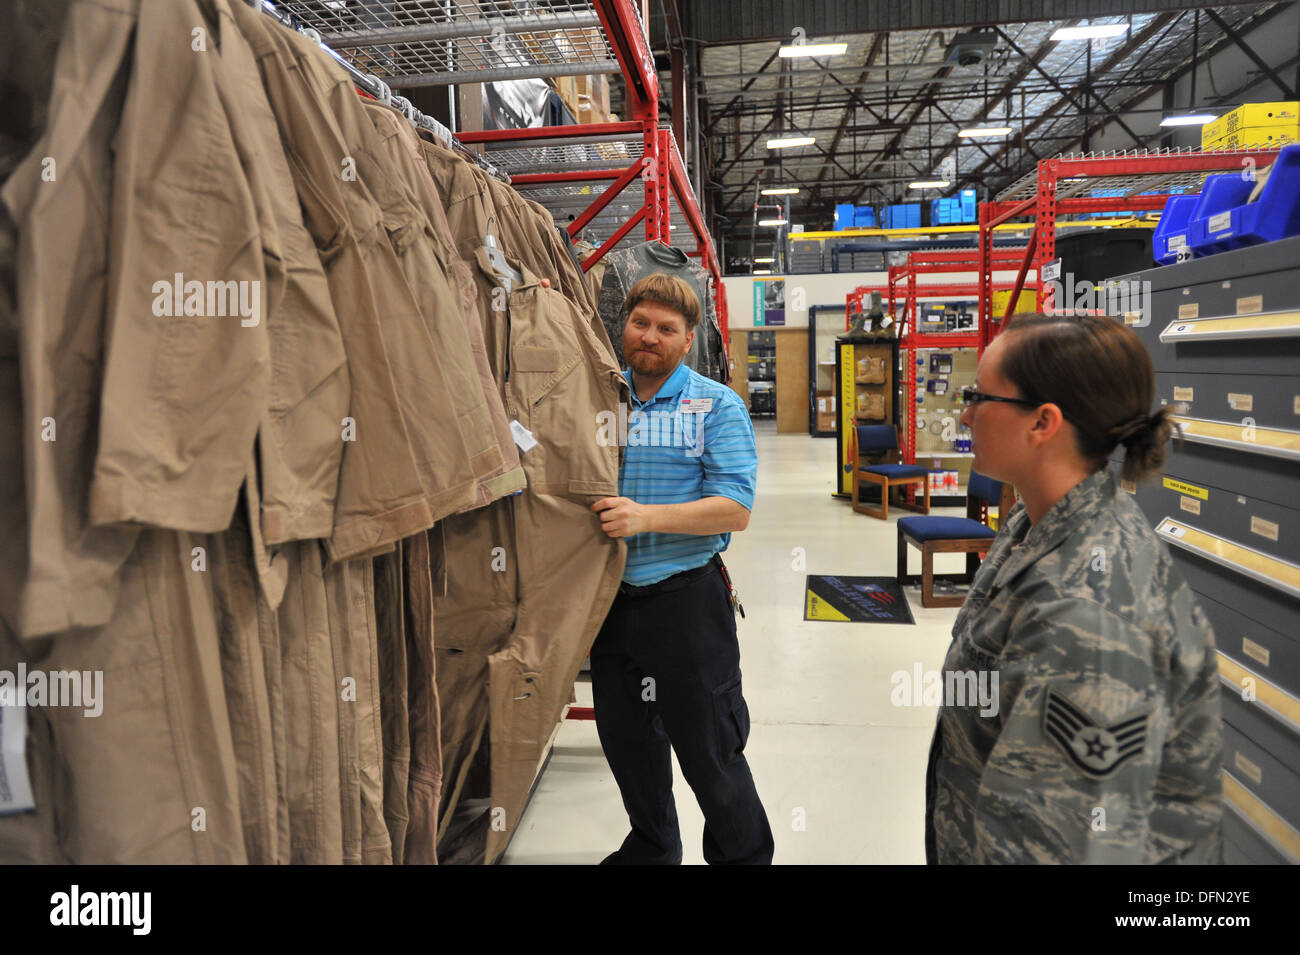 Eric Fornoff, Envision cashier, assists Staff Sgt. Cassie Kennedy, 242nd Combat Communications Squadron supply traditional, at the Base Supply Store at Fairchild Air Force Base, Wash., Sept. 30, 2013. Fornoff is legally blind and has been working on Fairc - Stock Image